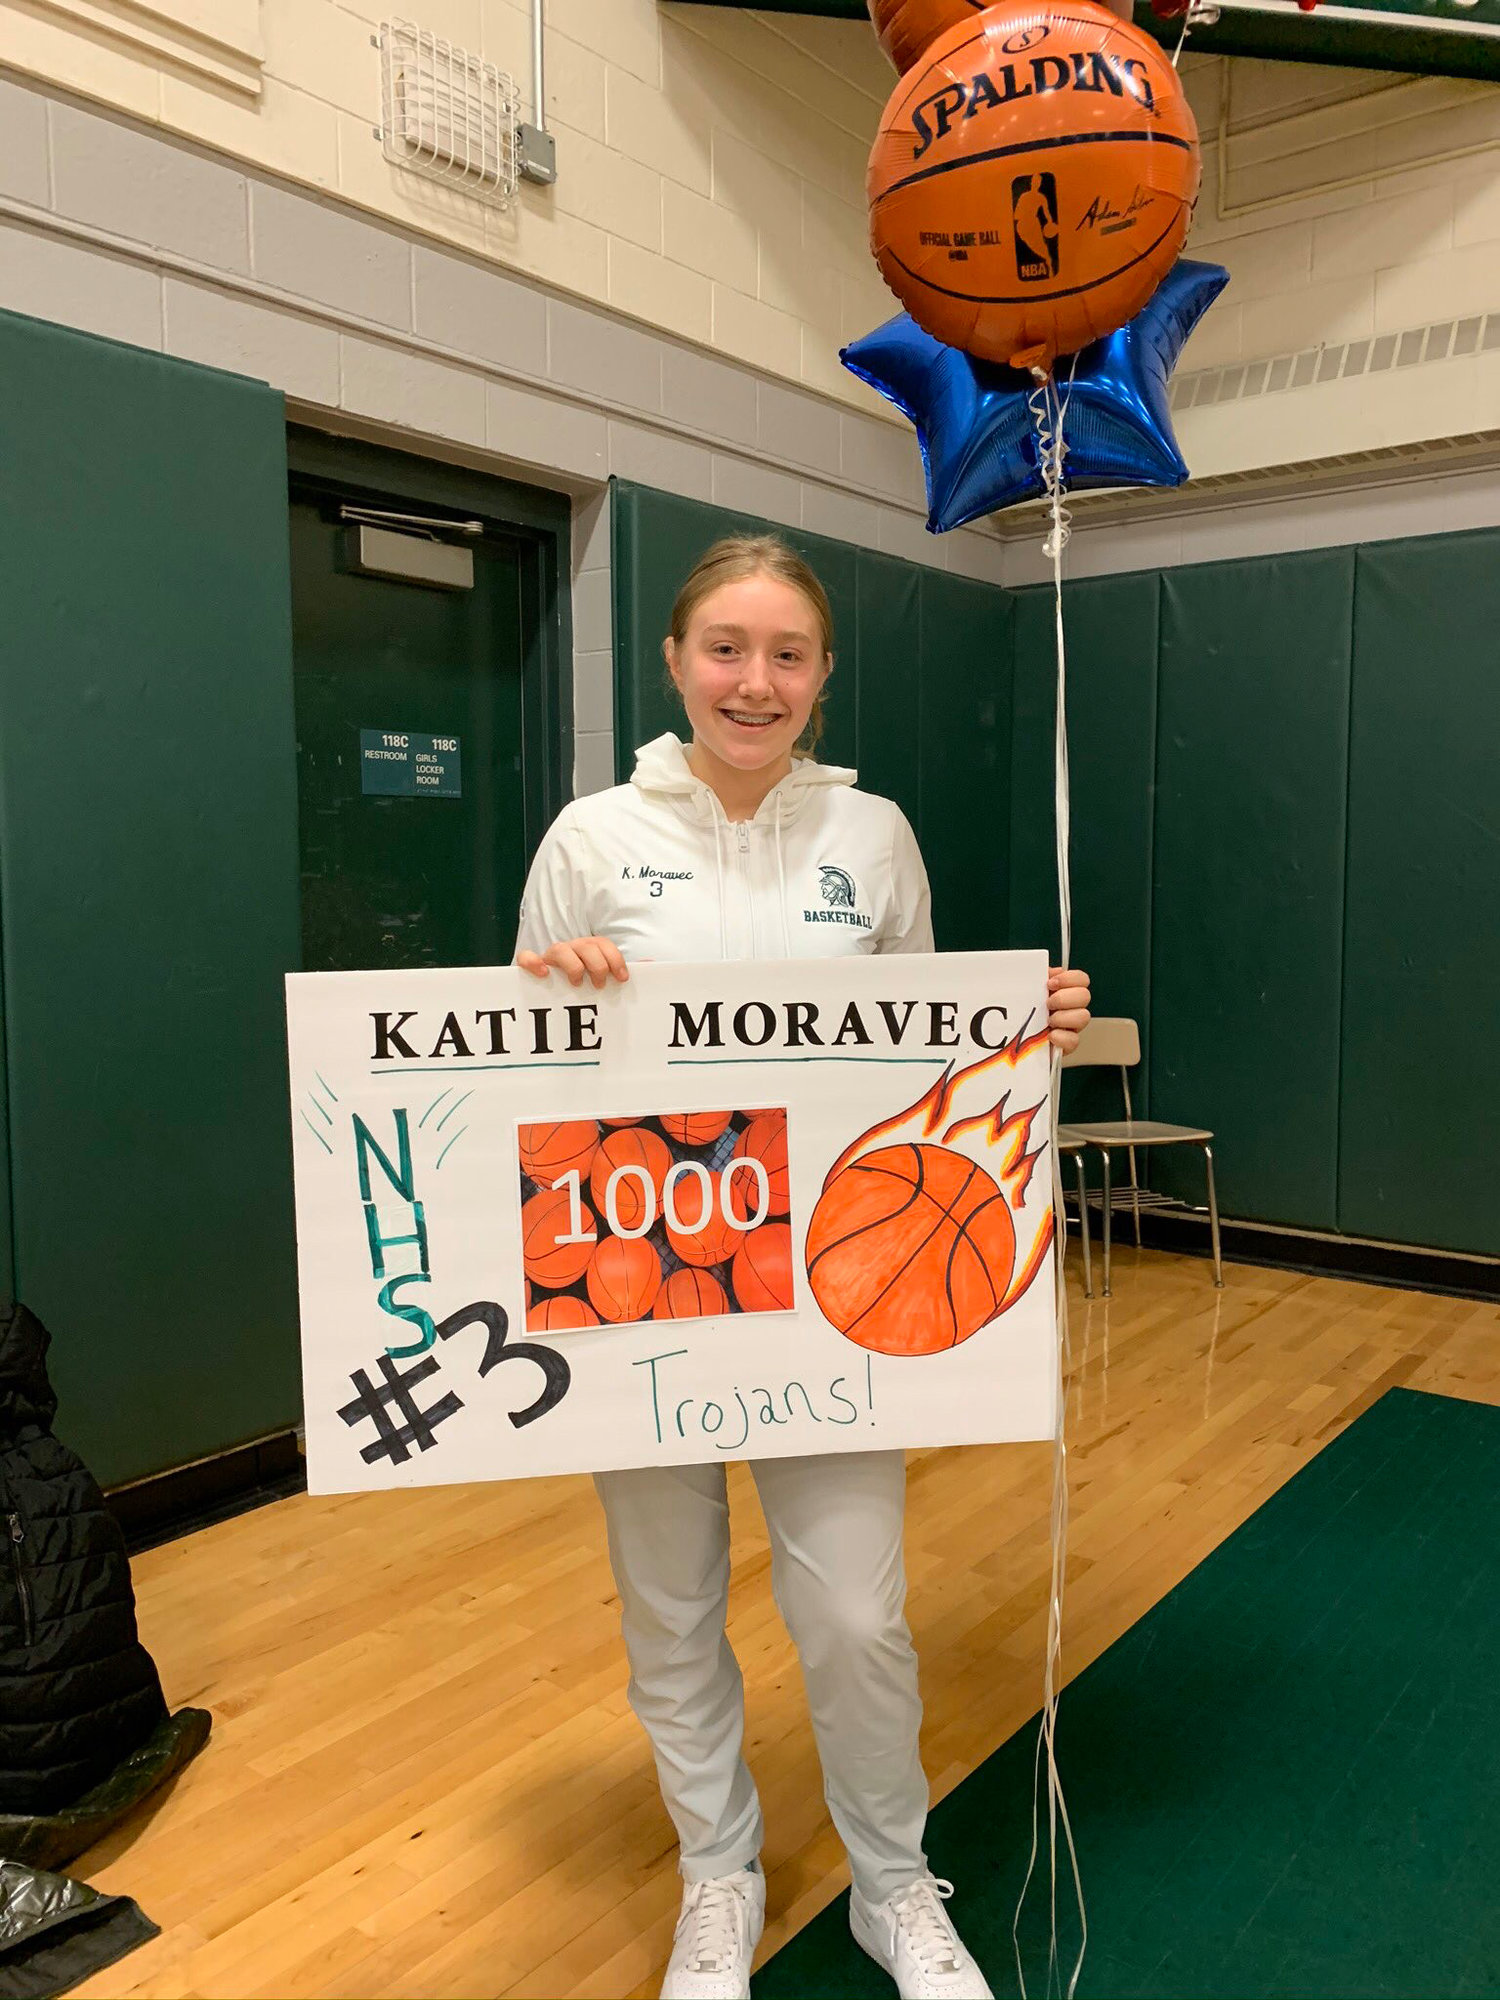 Junior Katie Moravec celebrates her 1,000 point milestone with a fan-made poster and balloons. Moravec has been a key member of the currently undefeated Newfield Trojans girls basketball team since eighth grade.